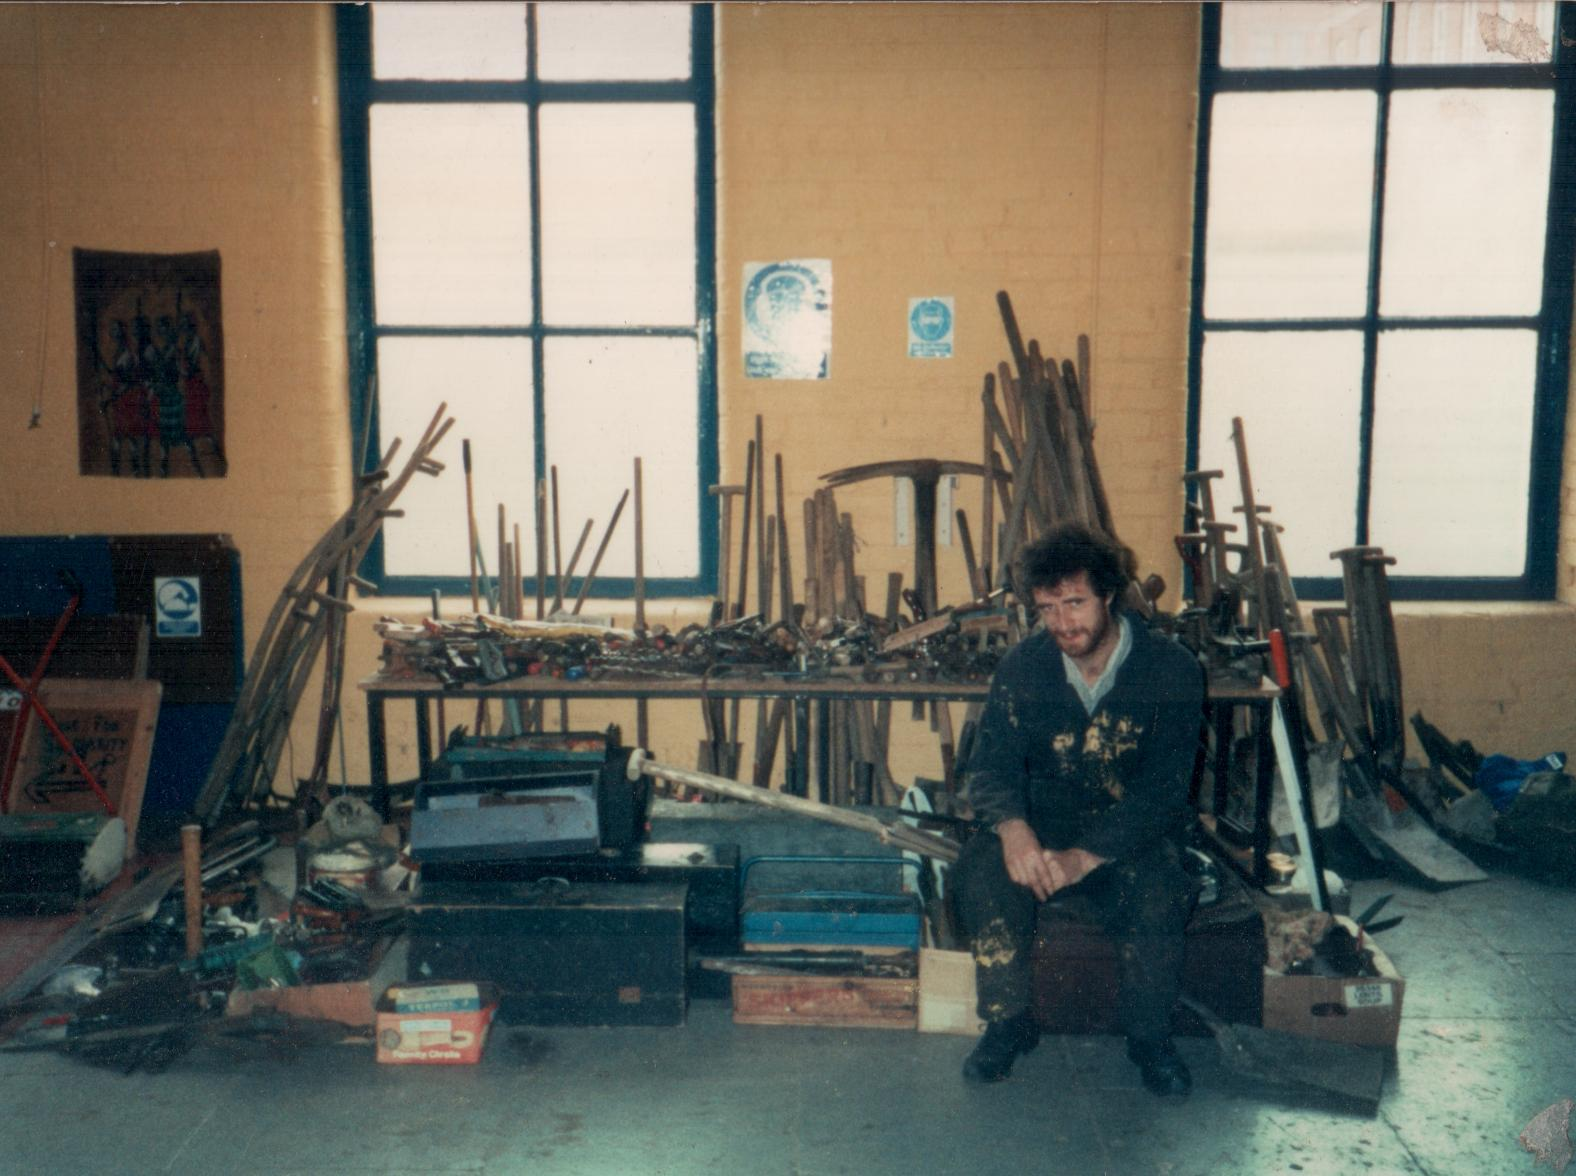 John with tools in the workshop in Crumlin Rd